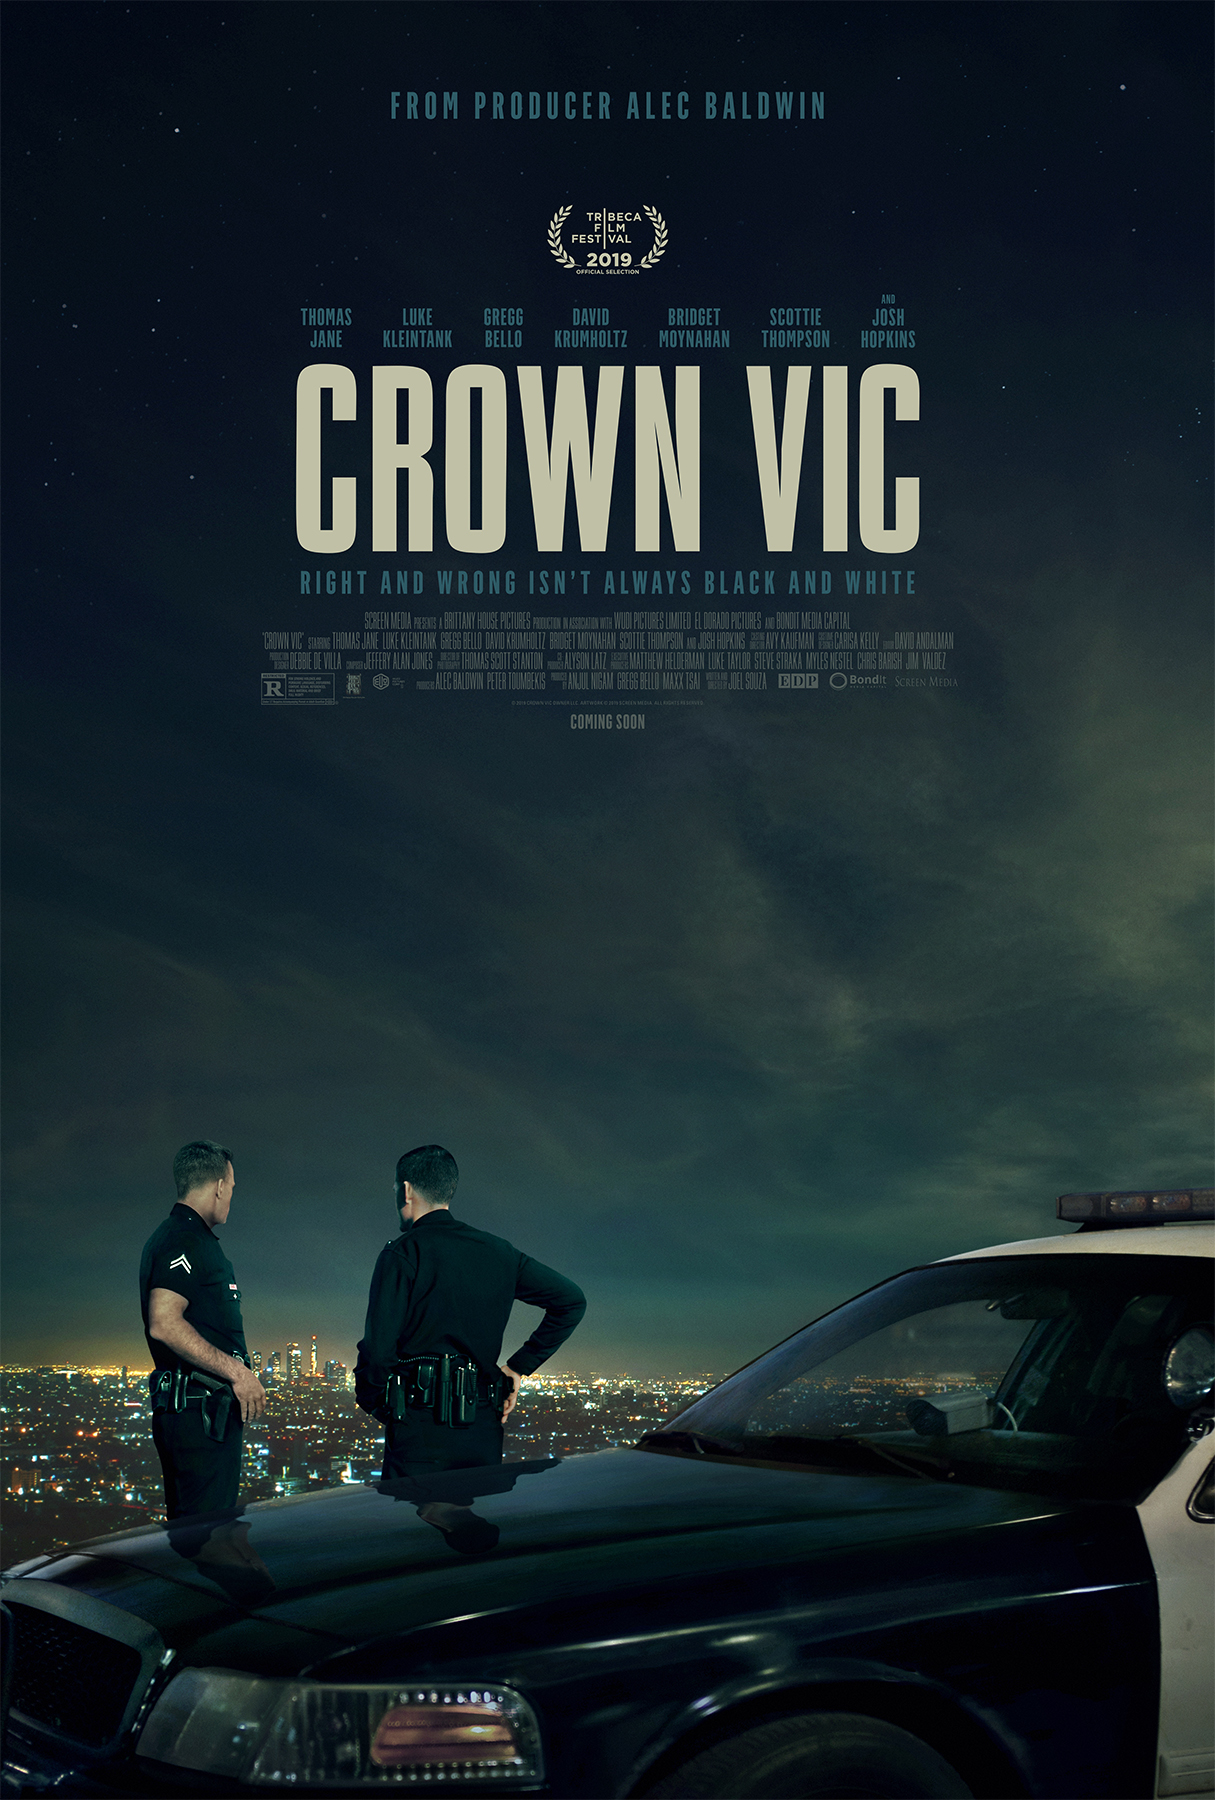 Crown.Vic.2019.MULTi.COMPLETE.BLURAY-MONUMENT